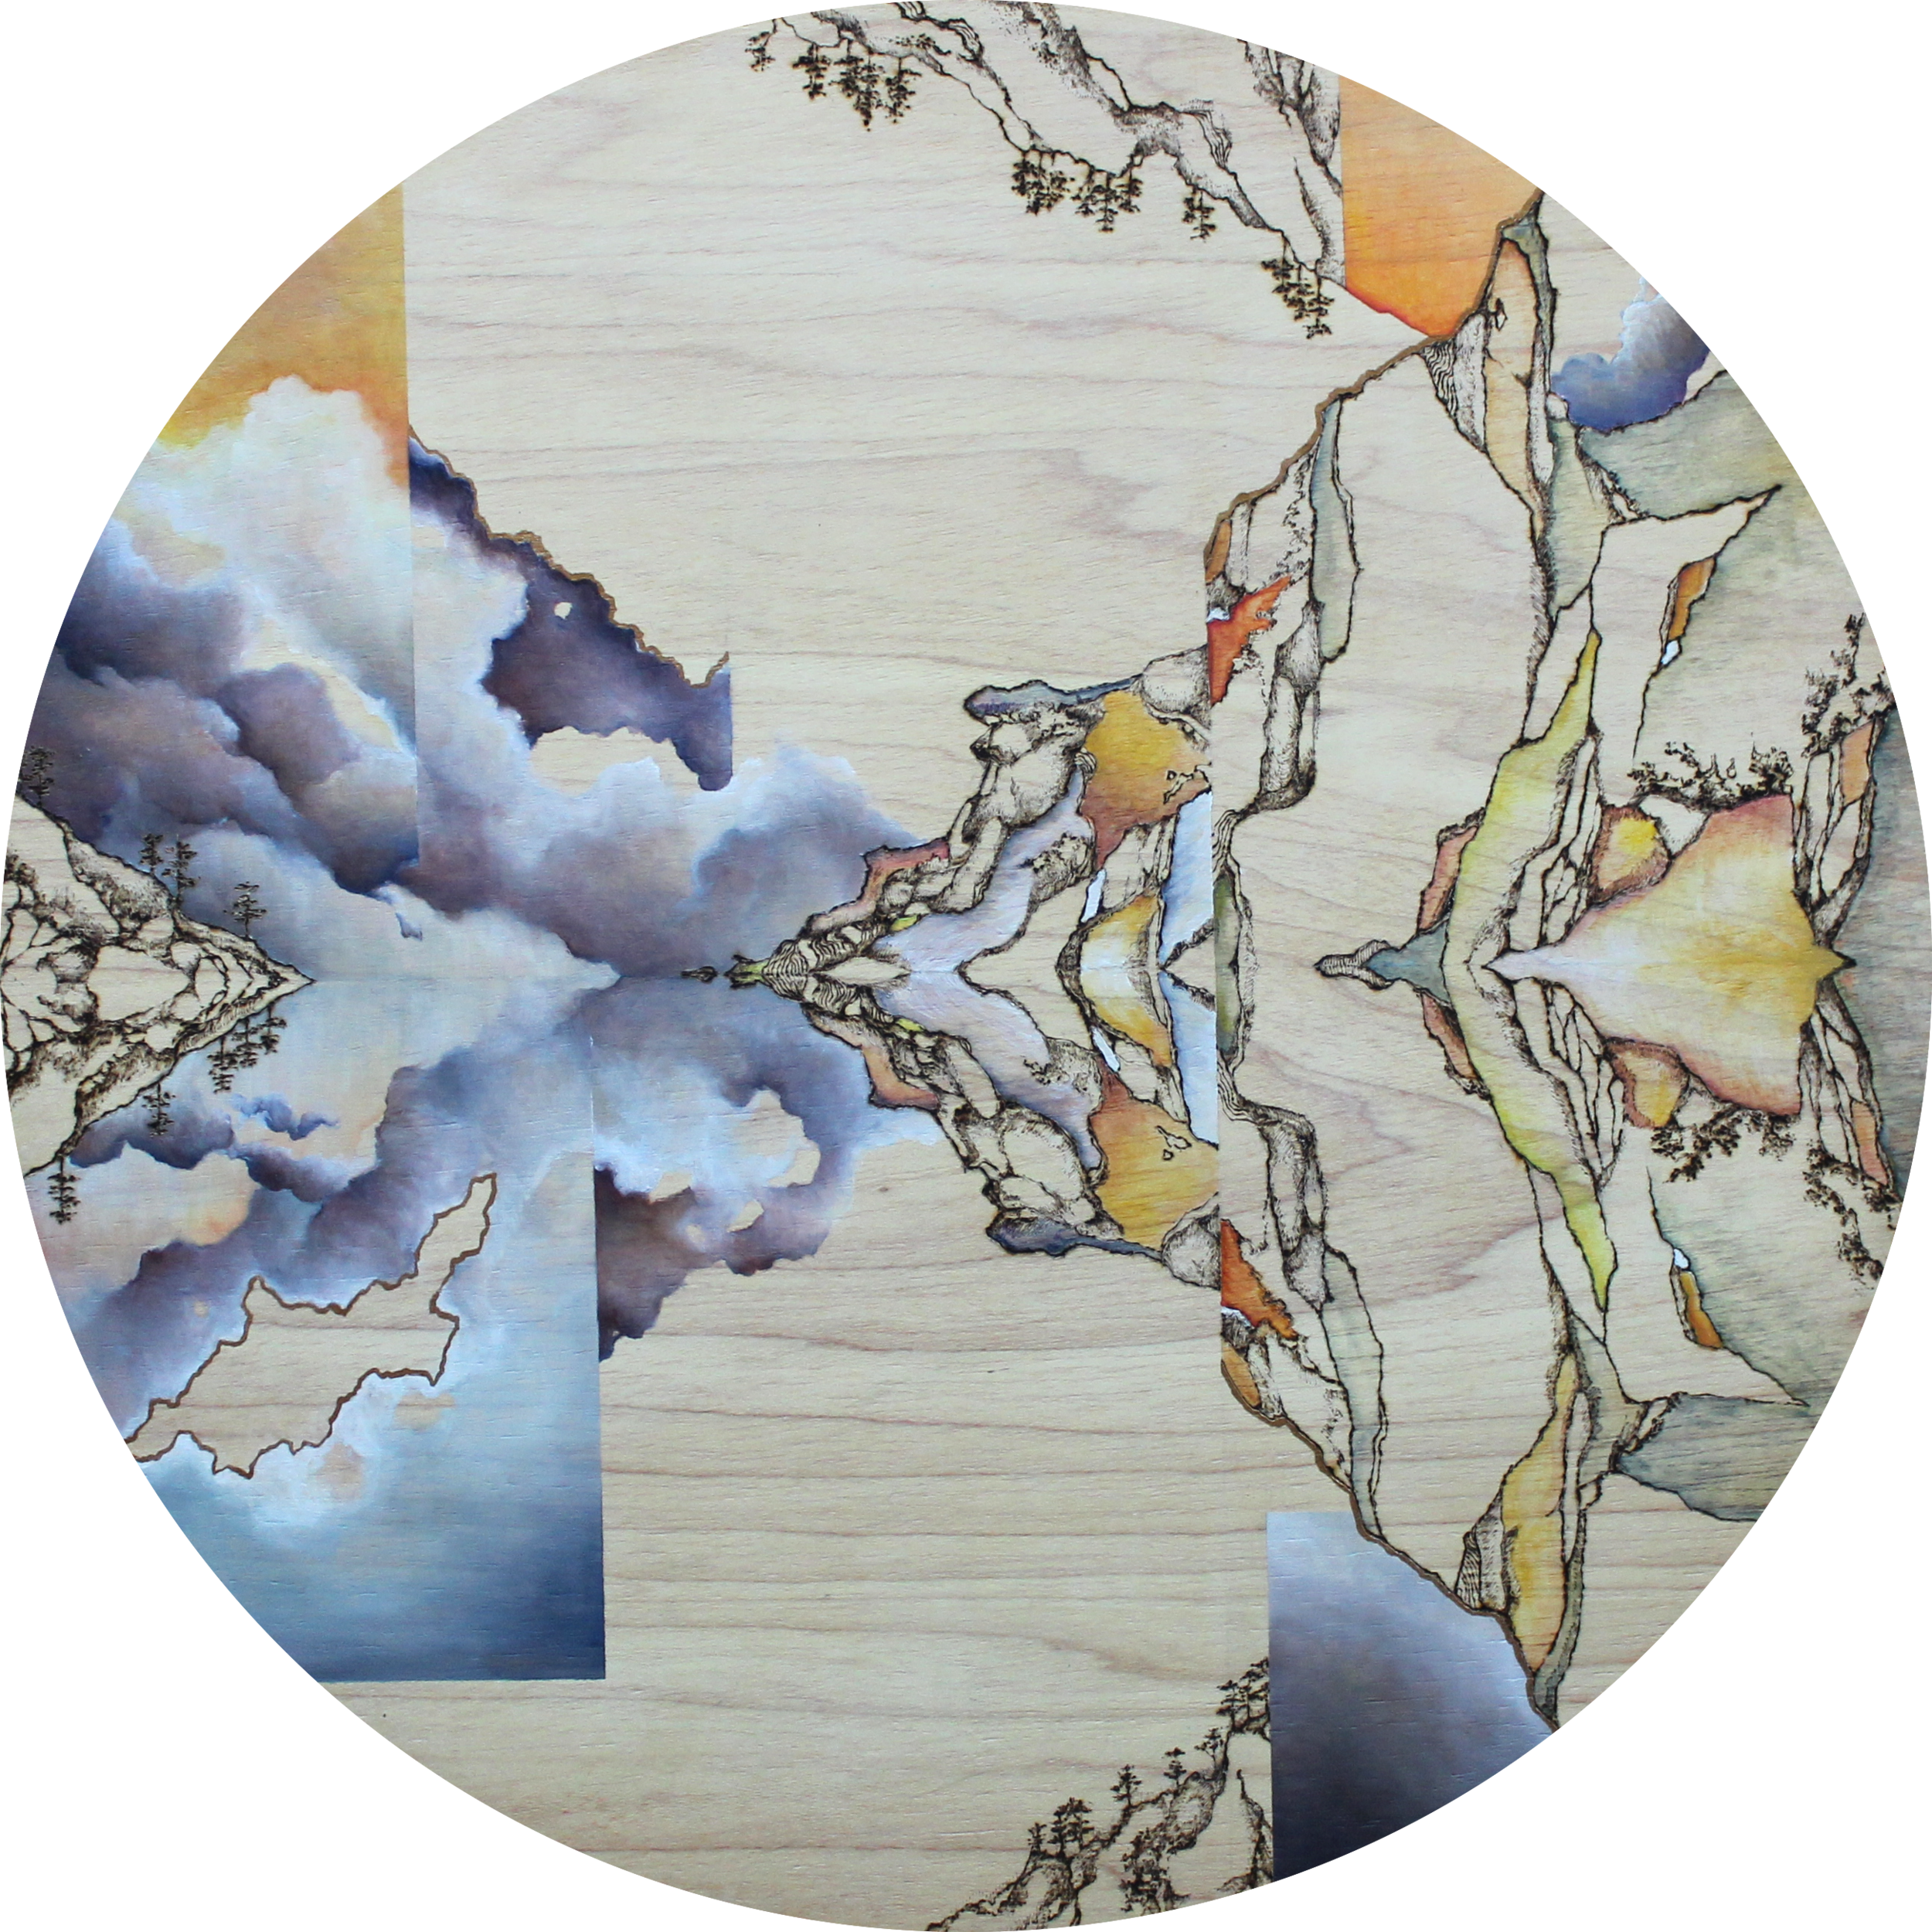 2. Island_Oil and pyrography on wood_51cm diameter_2016.png